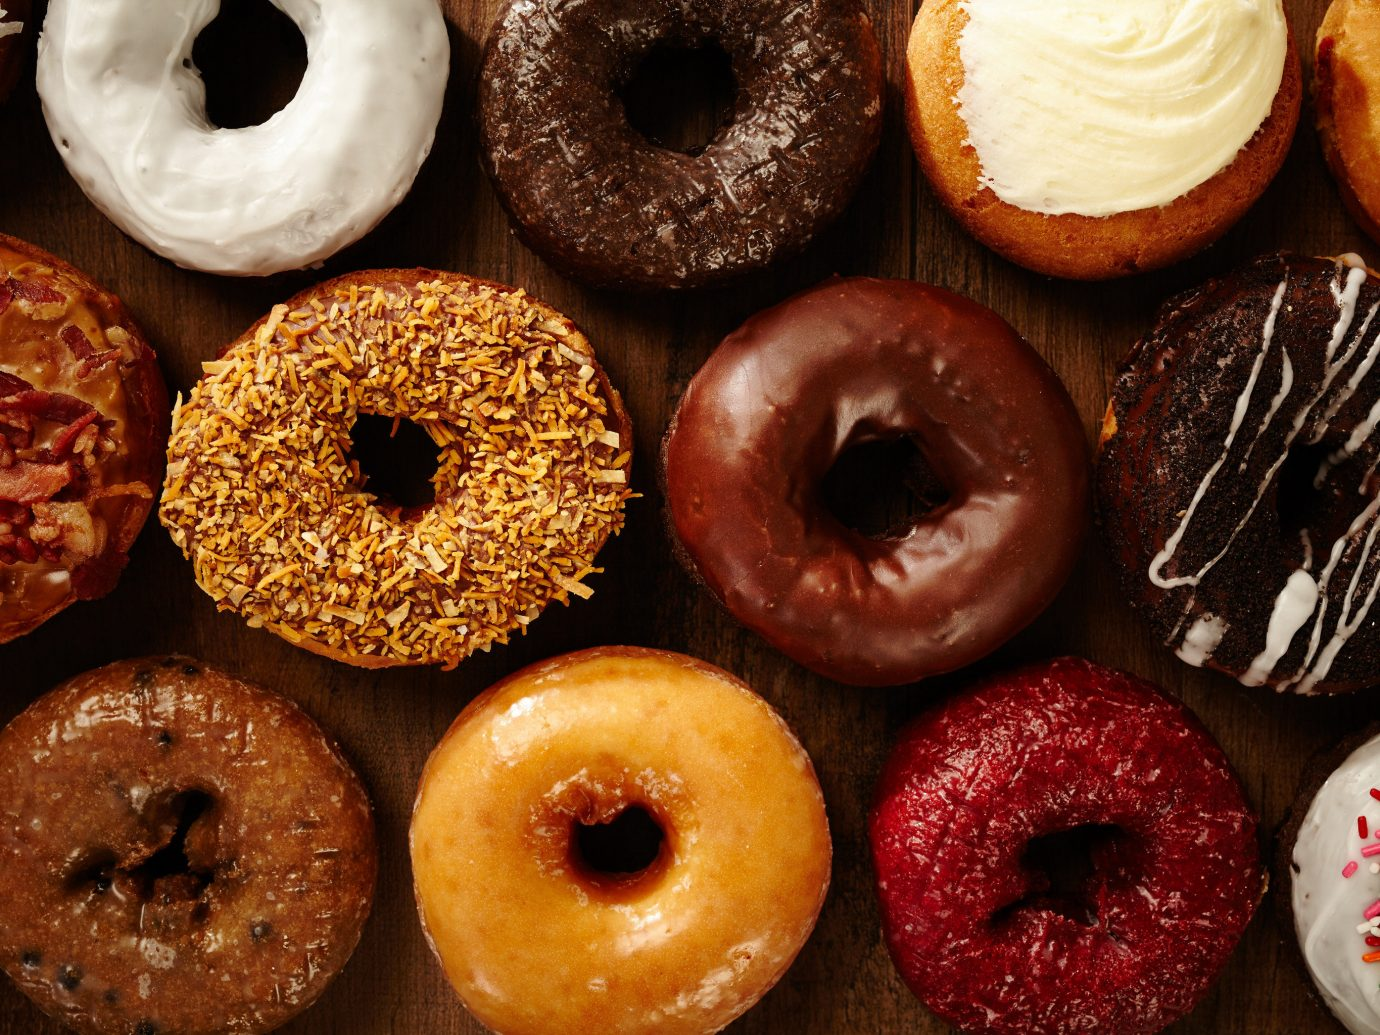 Boutique Hotels Fall Travel Trip Ideas Weekend Getaways doughnut donut rack cider doughnut dessert glaze food baking sweetness grill plain baked goods different finger food flavor pastry lined assorted bagel half variety colorful several pan colored